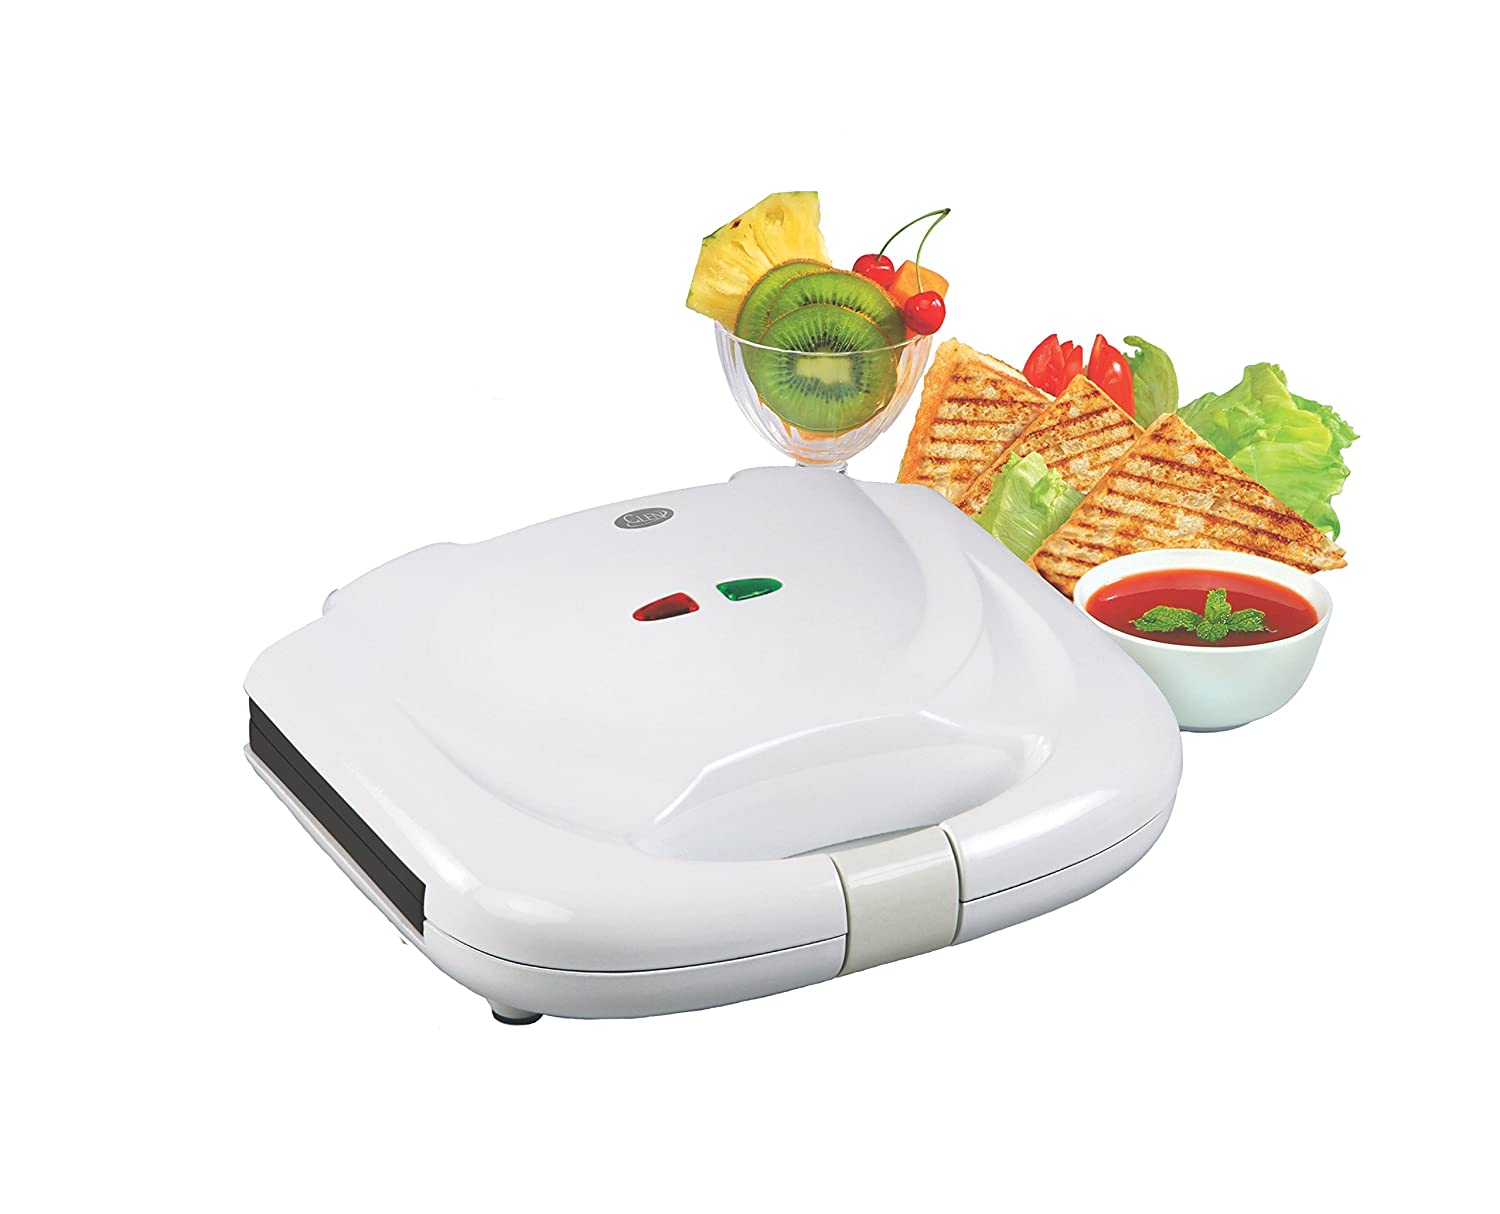 Glen 750 Watt Sandwich Grill Maker for ₹1,195